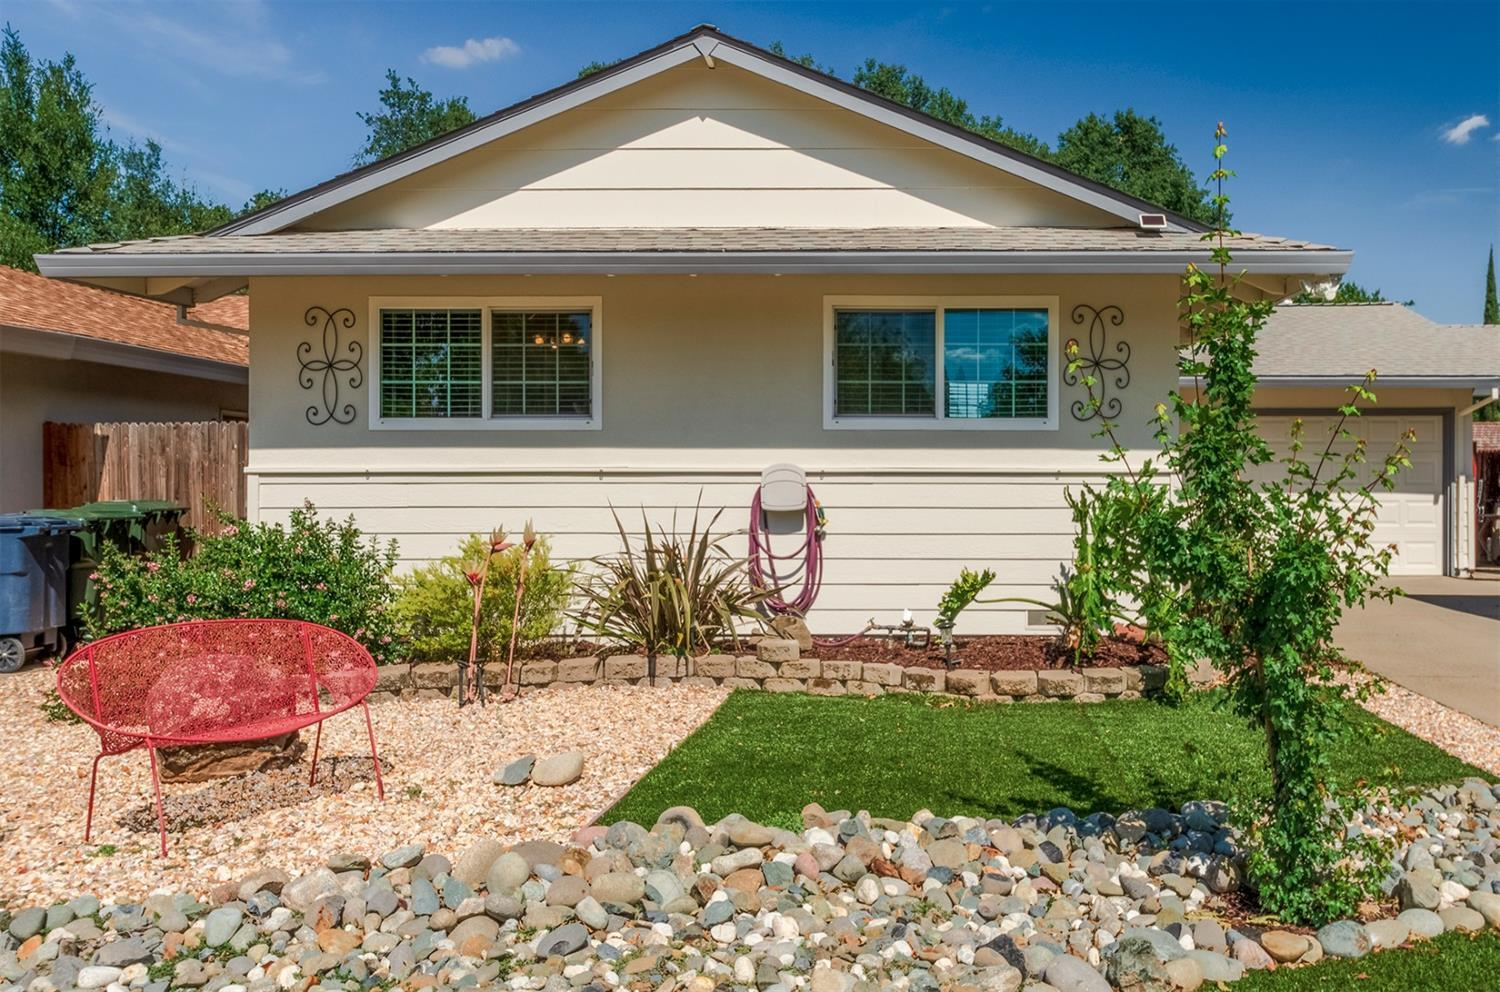 Homes for Sale in Citrus Heights CA — Citrus Heights Real Estate ...